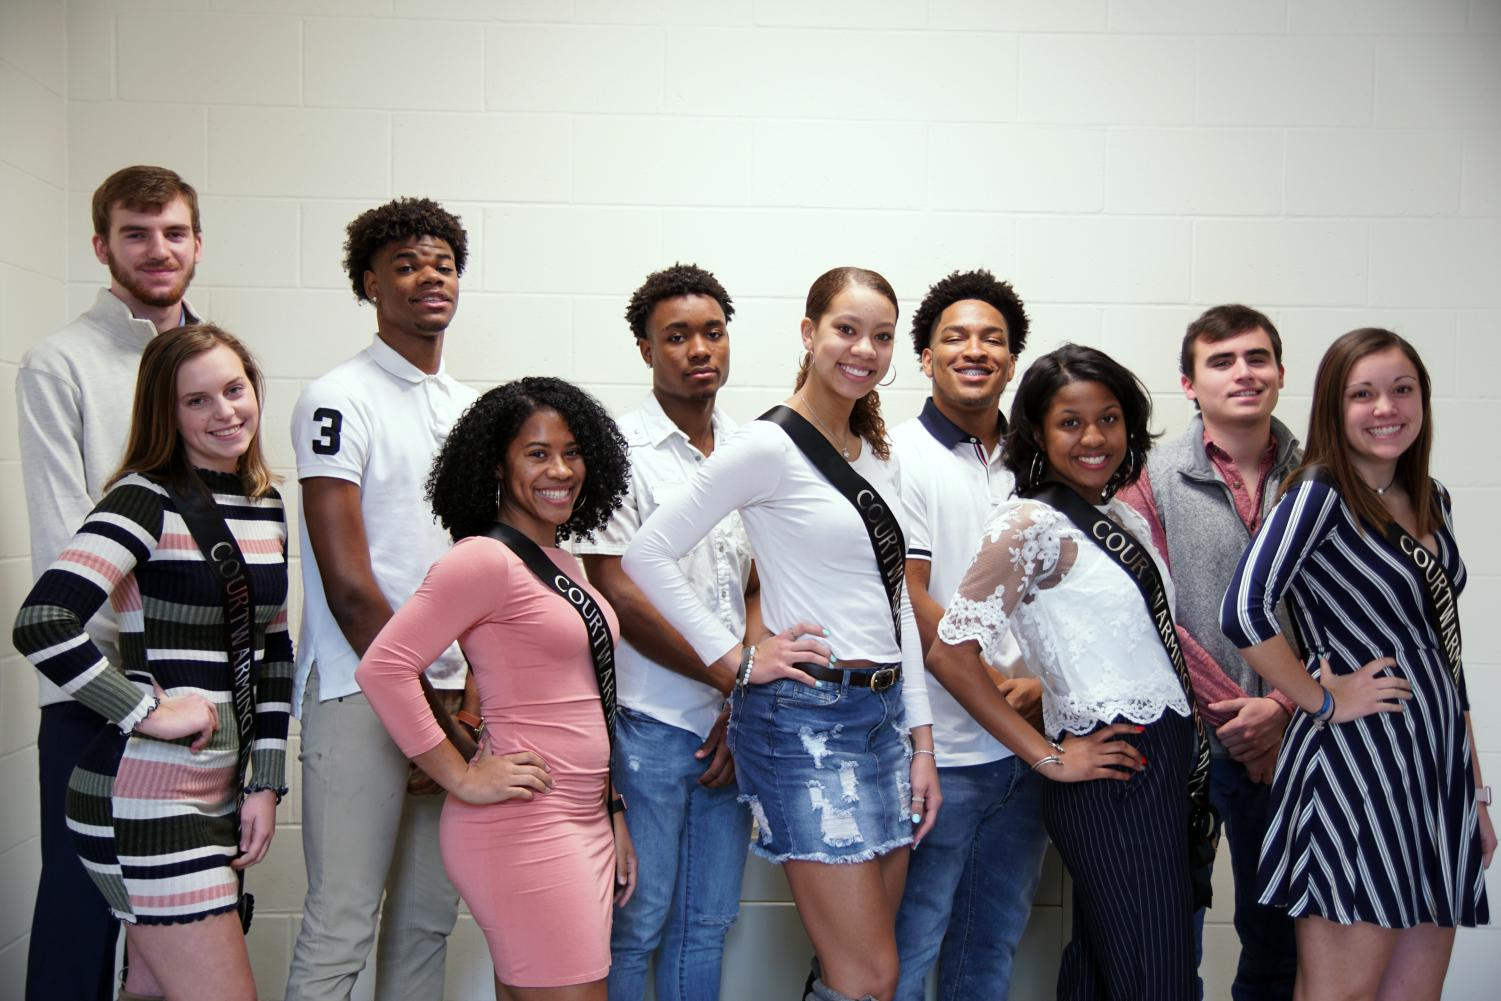 BACK ROW (left to right) Charlie Connor, Braijion Barnes, Tyrone Bates, Esrom Griffin, Kimball Backus. FRONT ROW (left to right) Grace Hawley, Jada Simmons, LaKya Leslie, Charity Monroe, Josie Barbosa